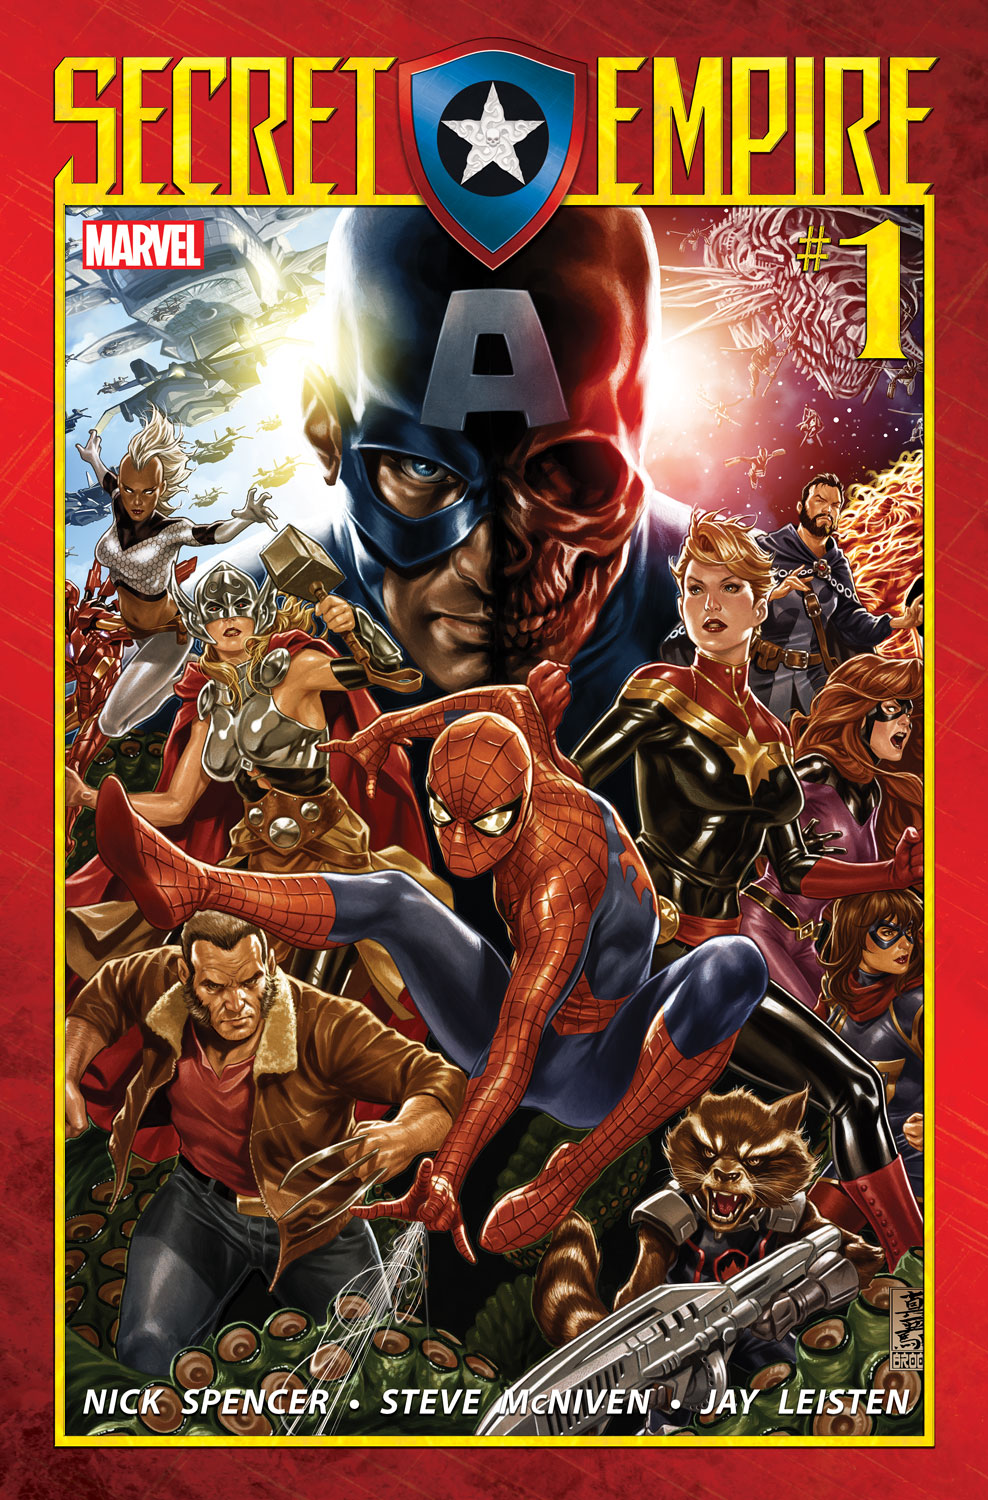 UNITED WE STAND – Your First Look at SECRET EMPIRE #1!